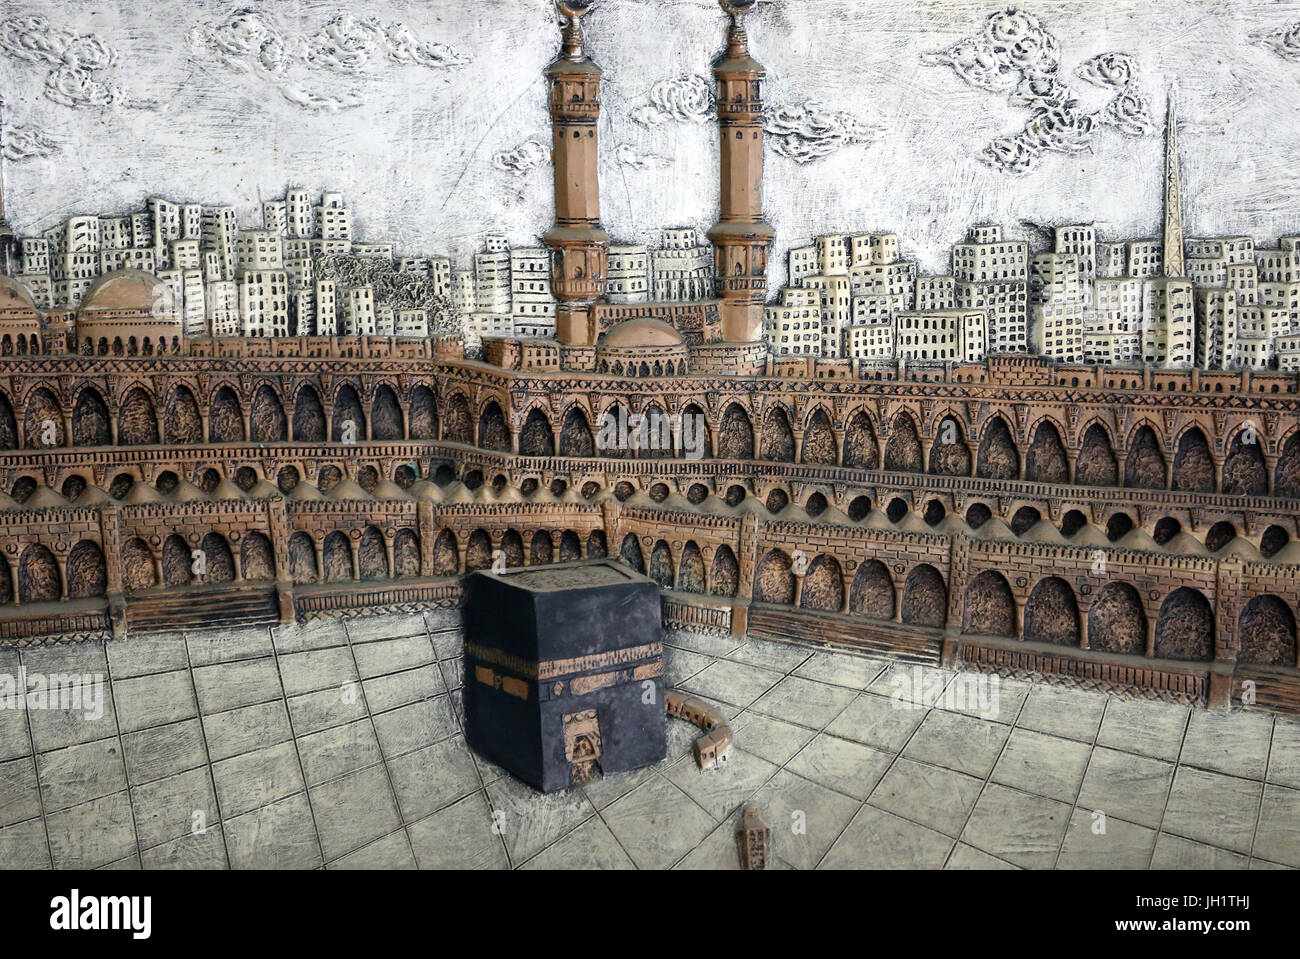 Holy Kaaba in Mecca Saudi Arabia. Vintage engraved illustration. Ho Chi Minh City. Vietnam. - Stock Image